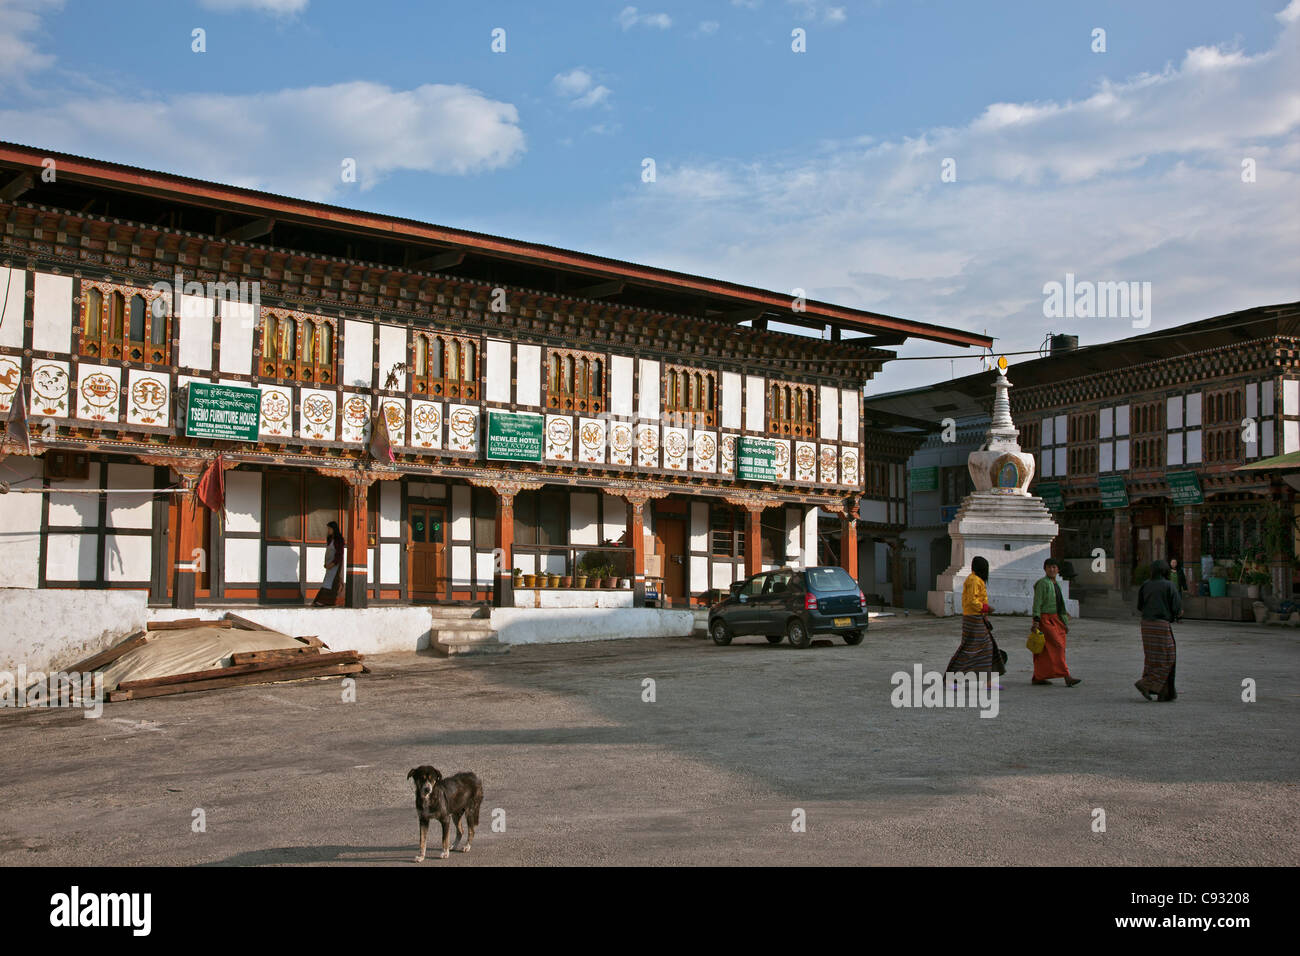 The hilltop town of Mongar showing buildings with the distinctive and decorative architectural style of the Kingdom - Stock Image